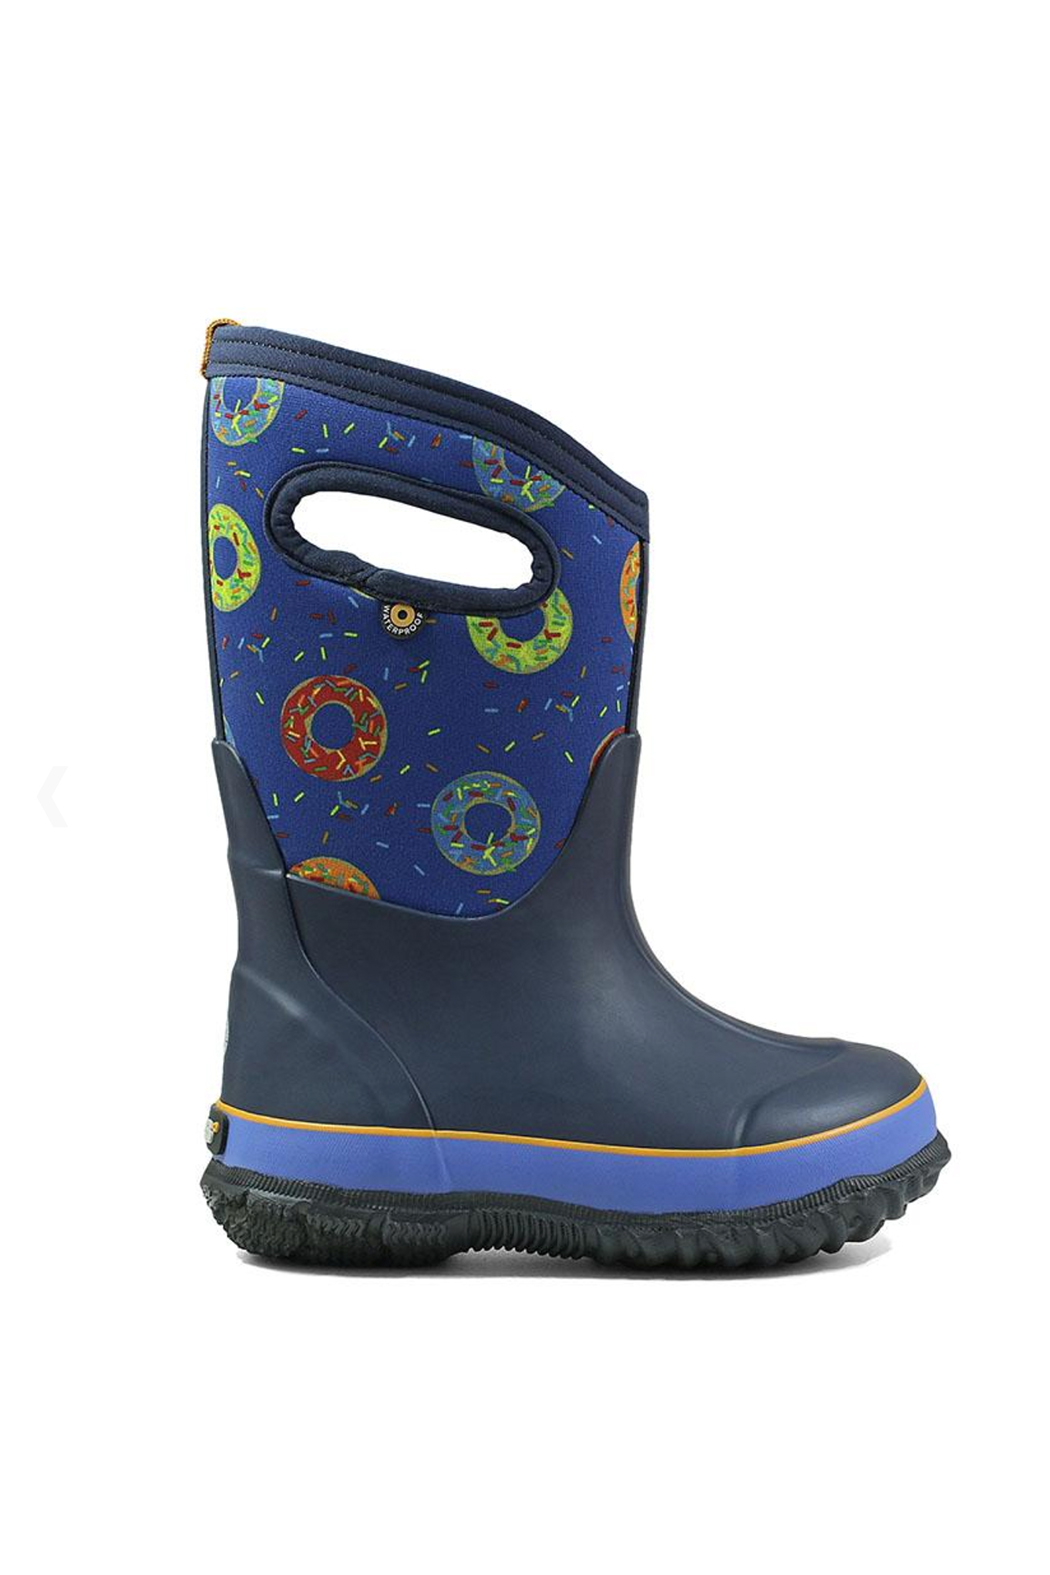 BOGS Classic Donuts Kids Insulated Boots - Main Image